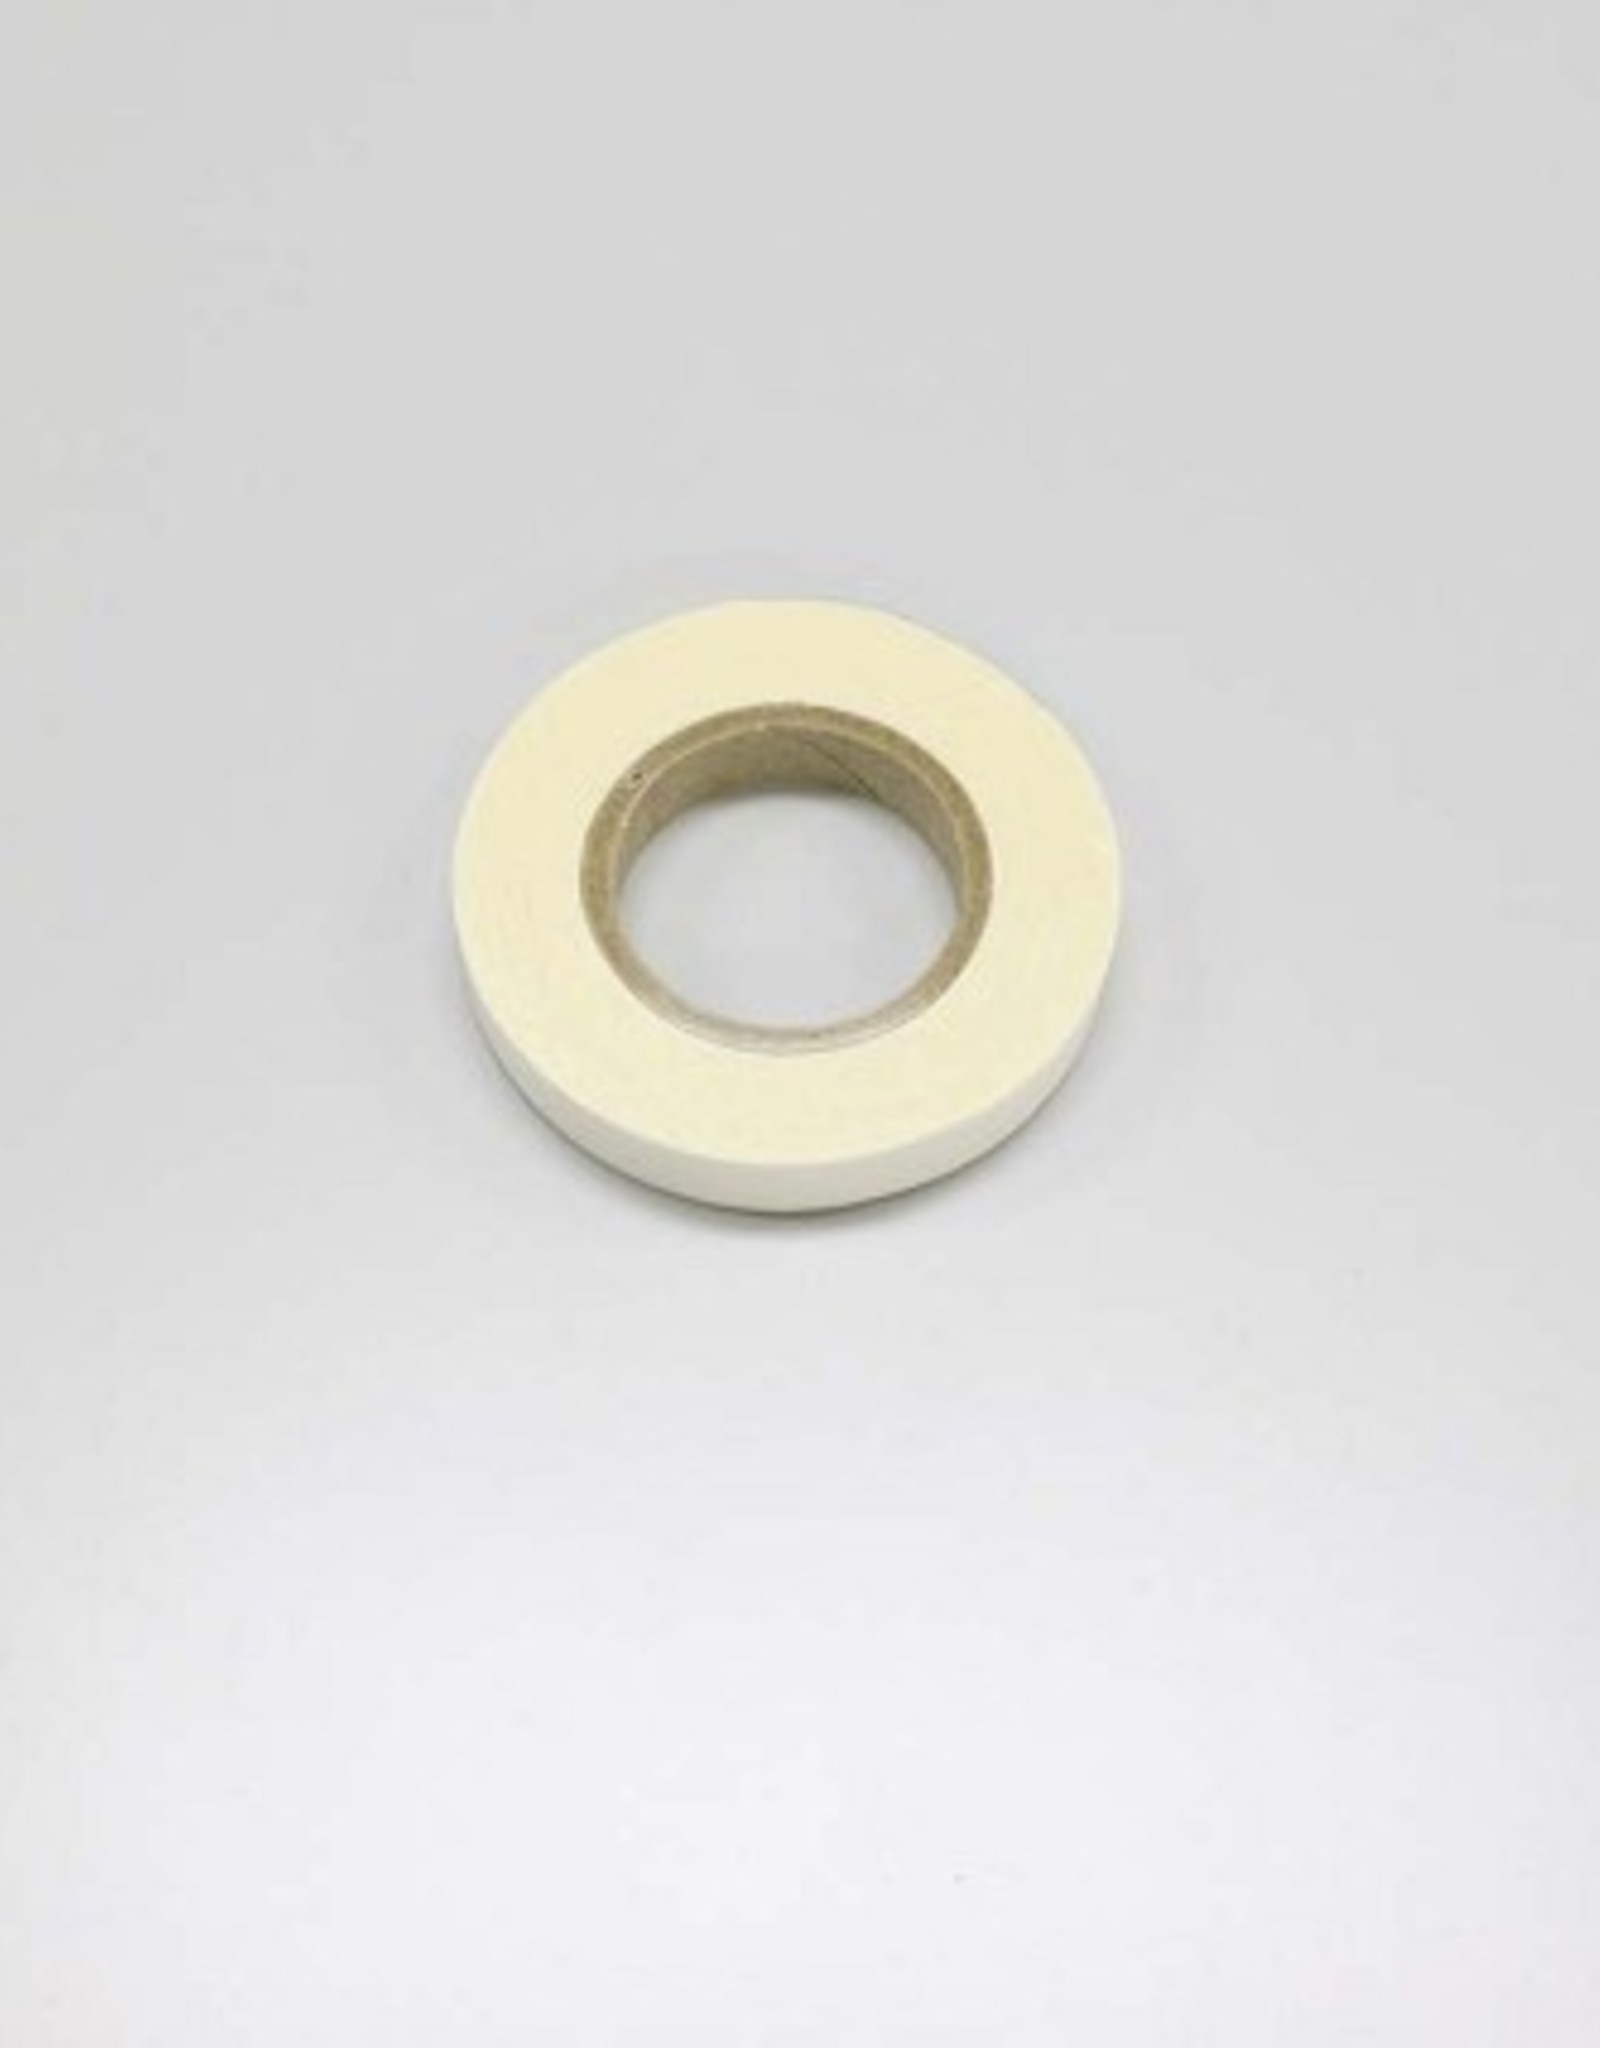 Route-246 Kyosho Mini-Z Route-246 Tire Tape Narrow 7mm